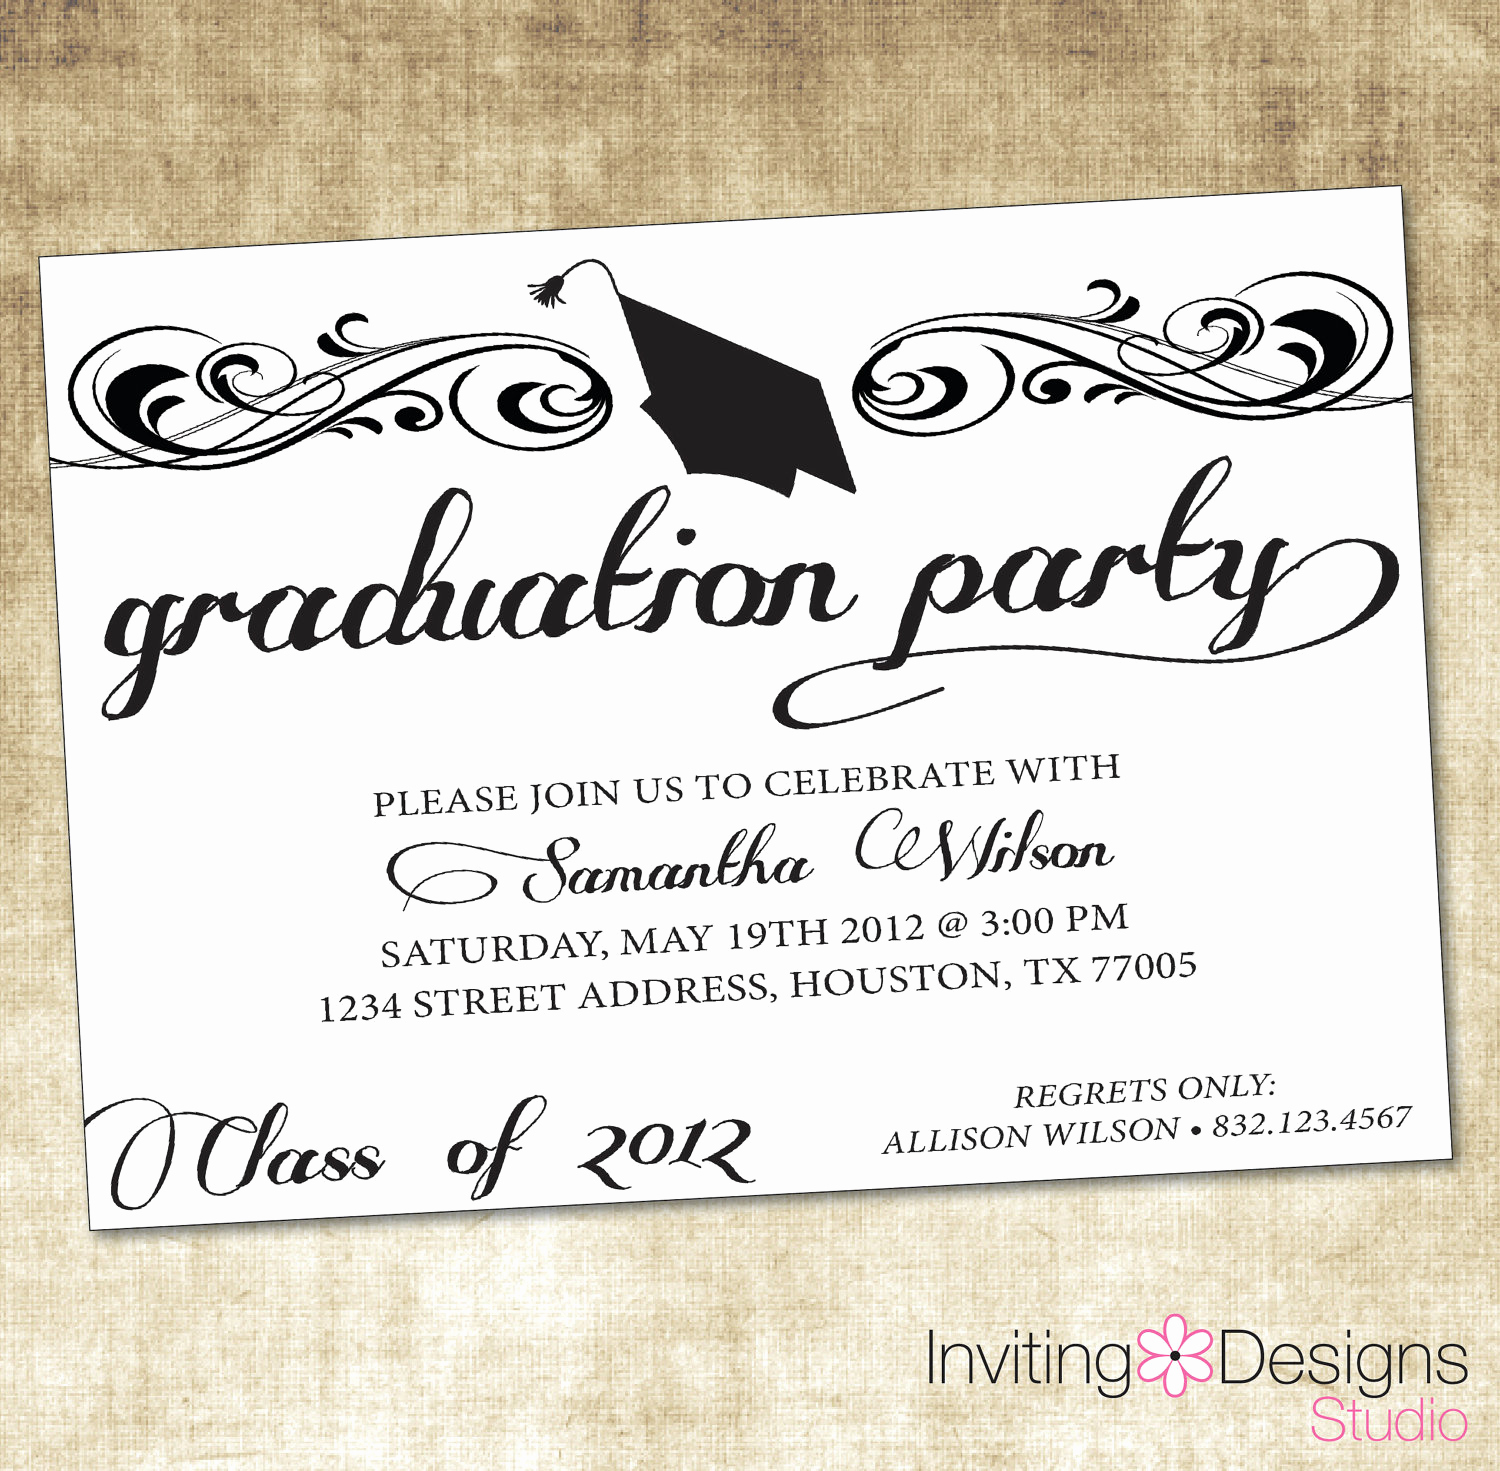 Graduation Party Invitation Template Free Fresh Quotes for Graduation Party Invitations Quotesgram